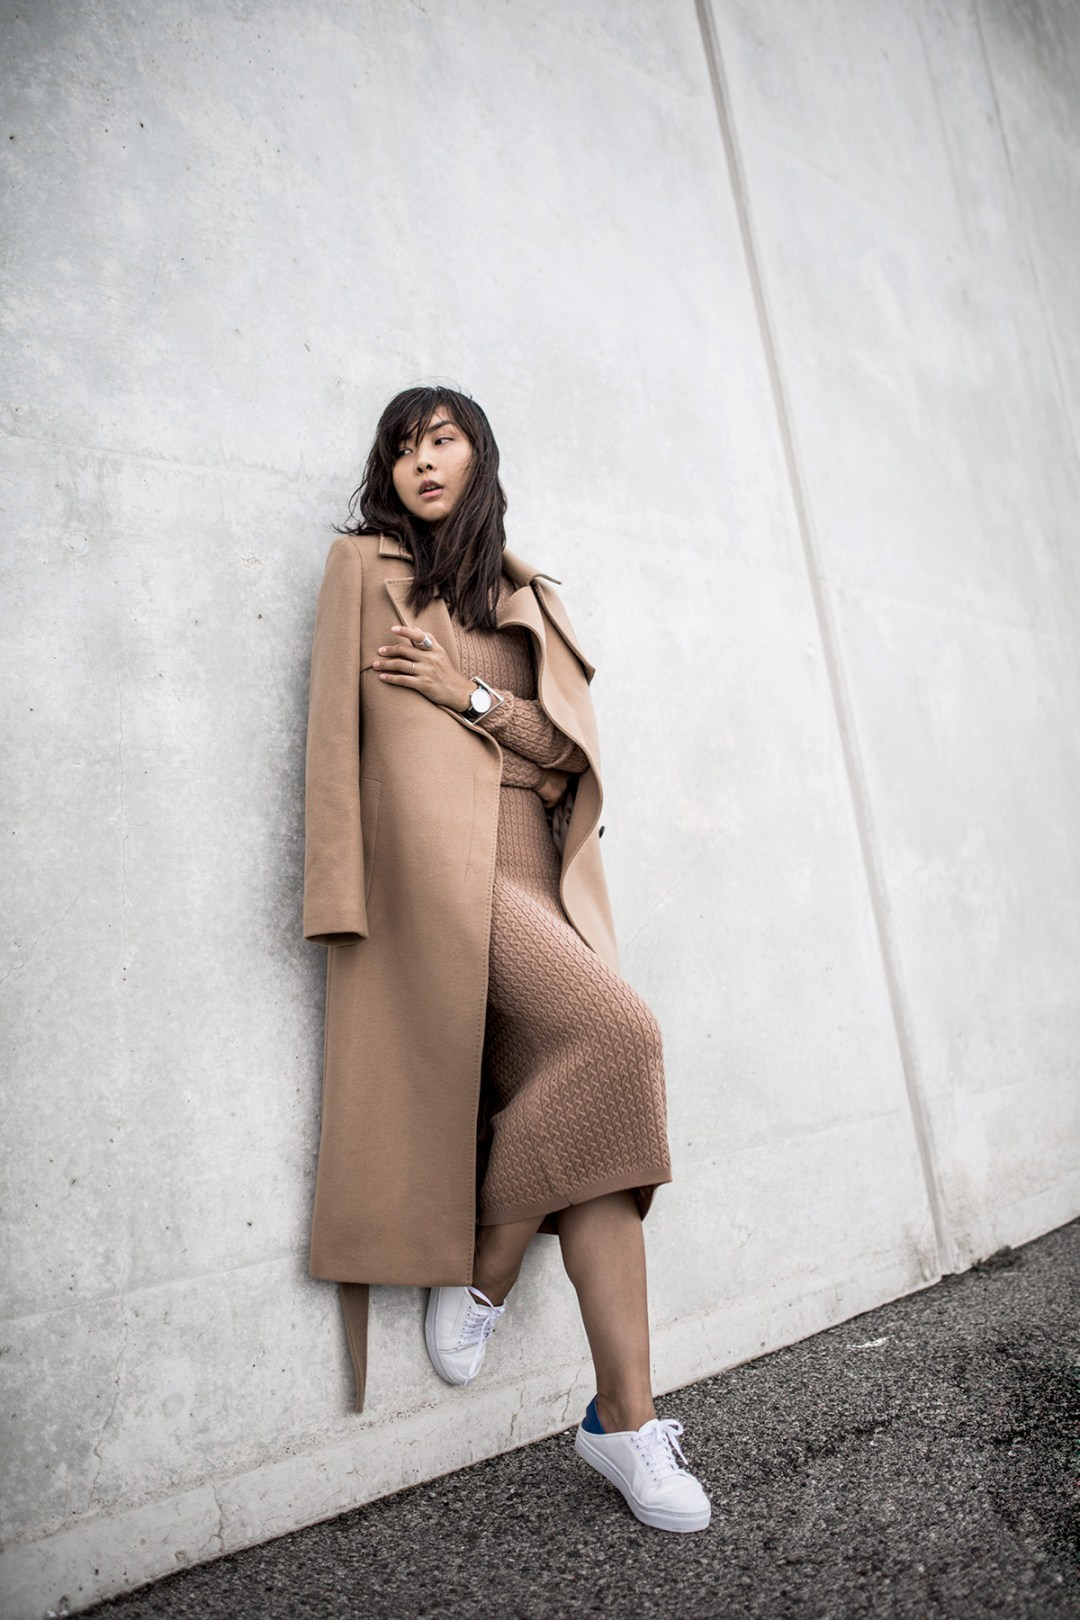 Camel Coat knit Dress Karen Millen Outfit Inspiration-19 copy